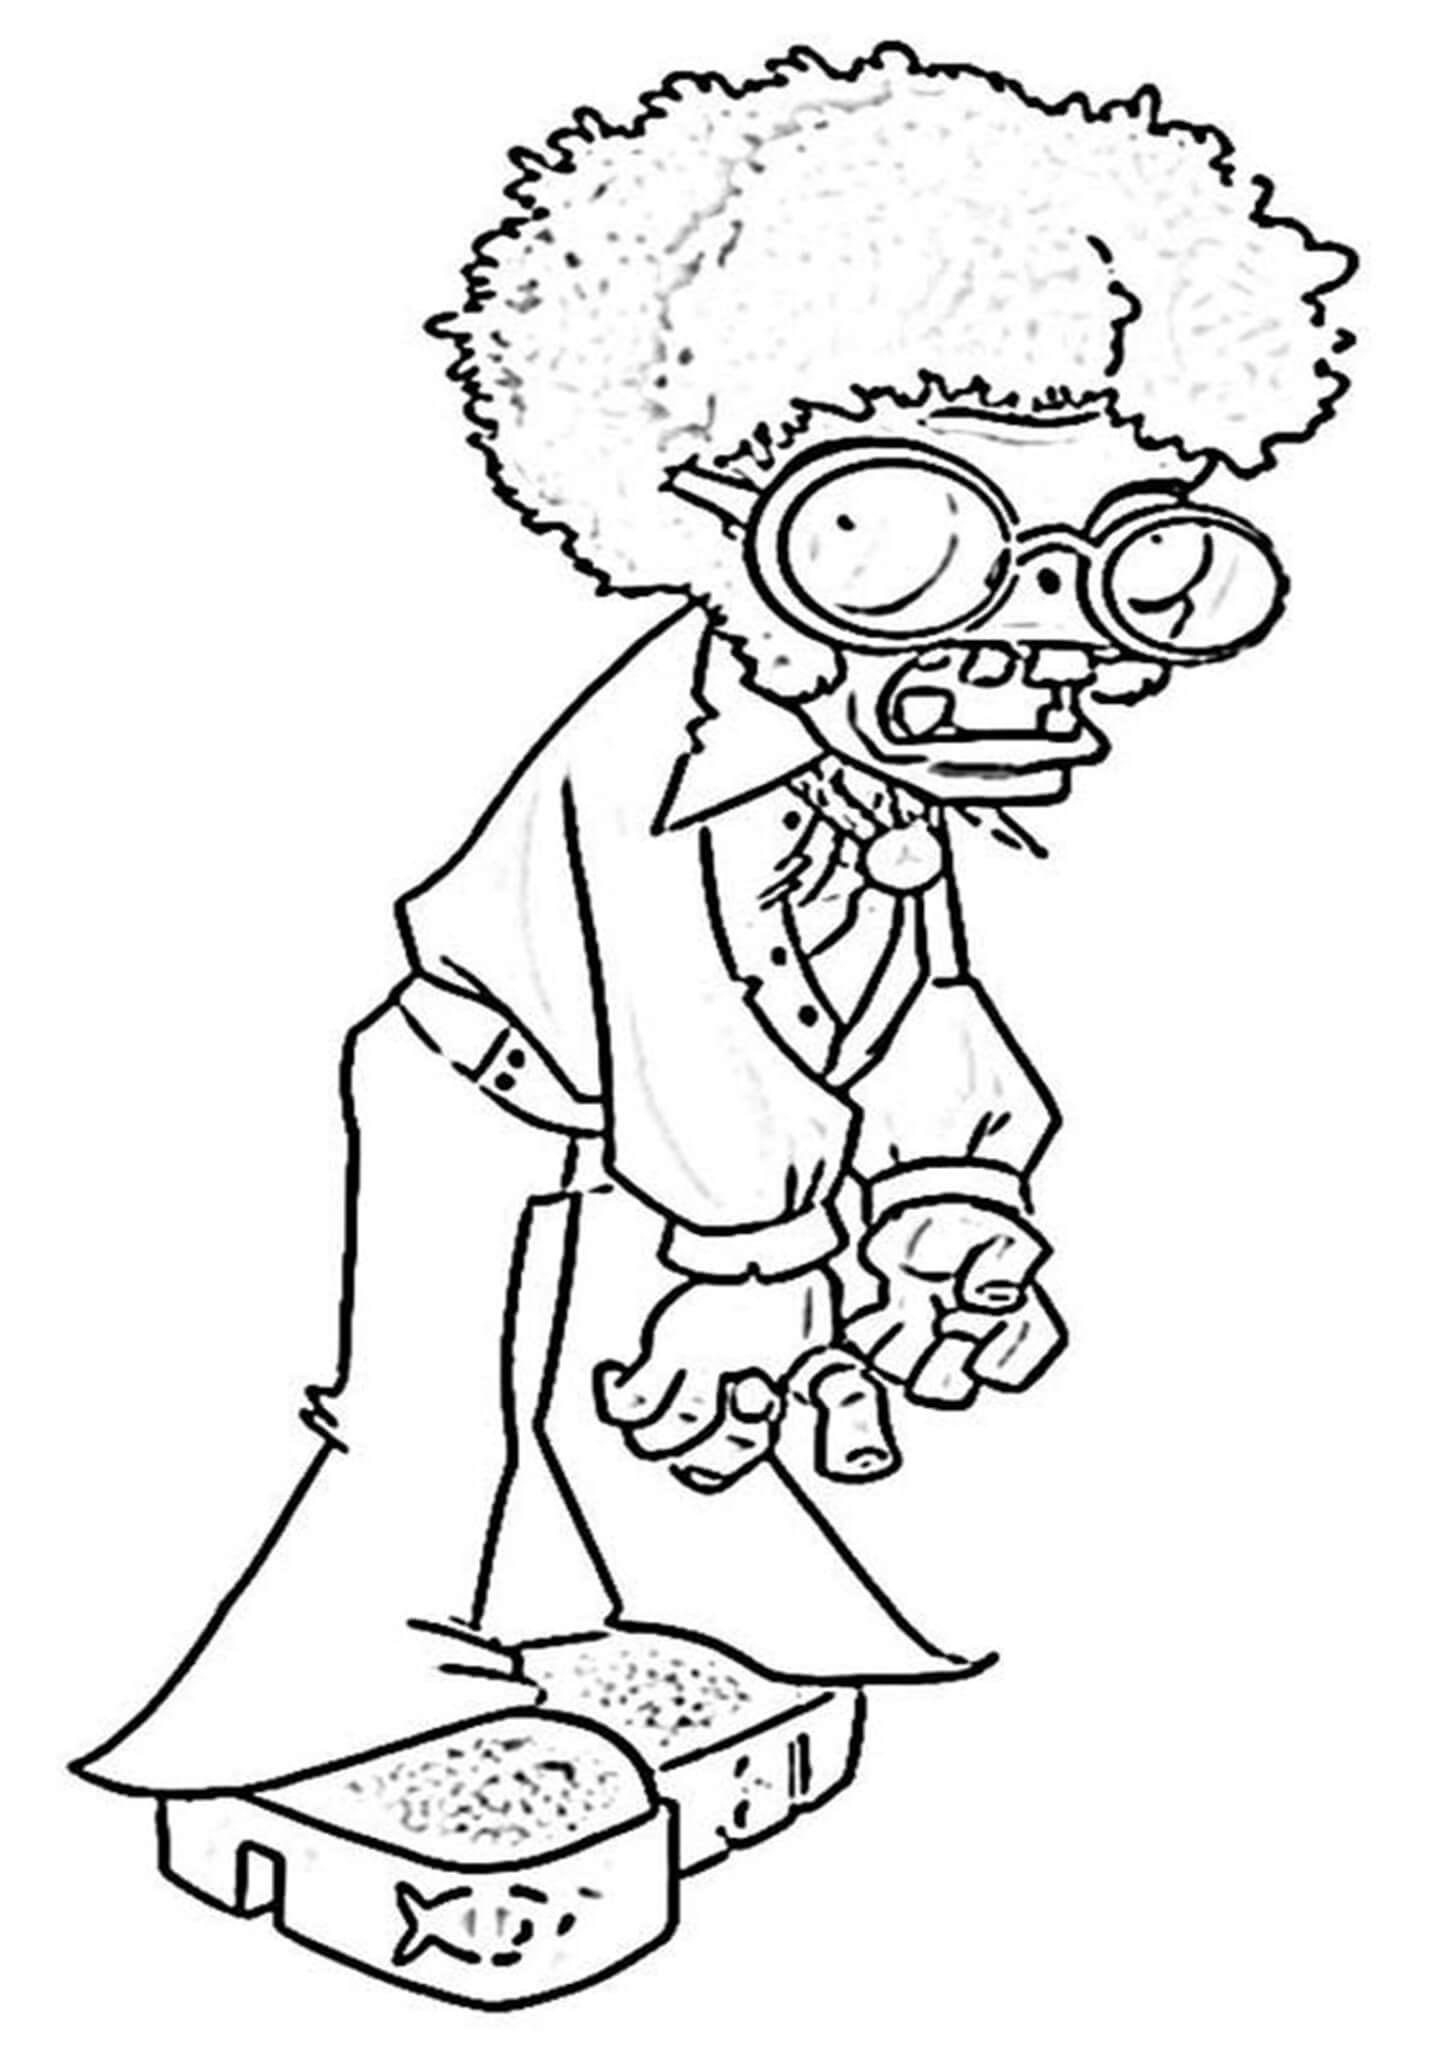 Free Easy To Print Plants Vs Zombies Coloring Pages In 2021 Coloring Books Coloring Pages Coloring Book Pages [ 2048 x 1448 Pixel ]